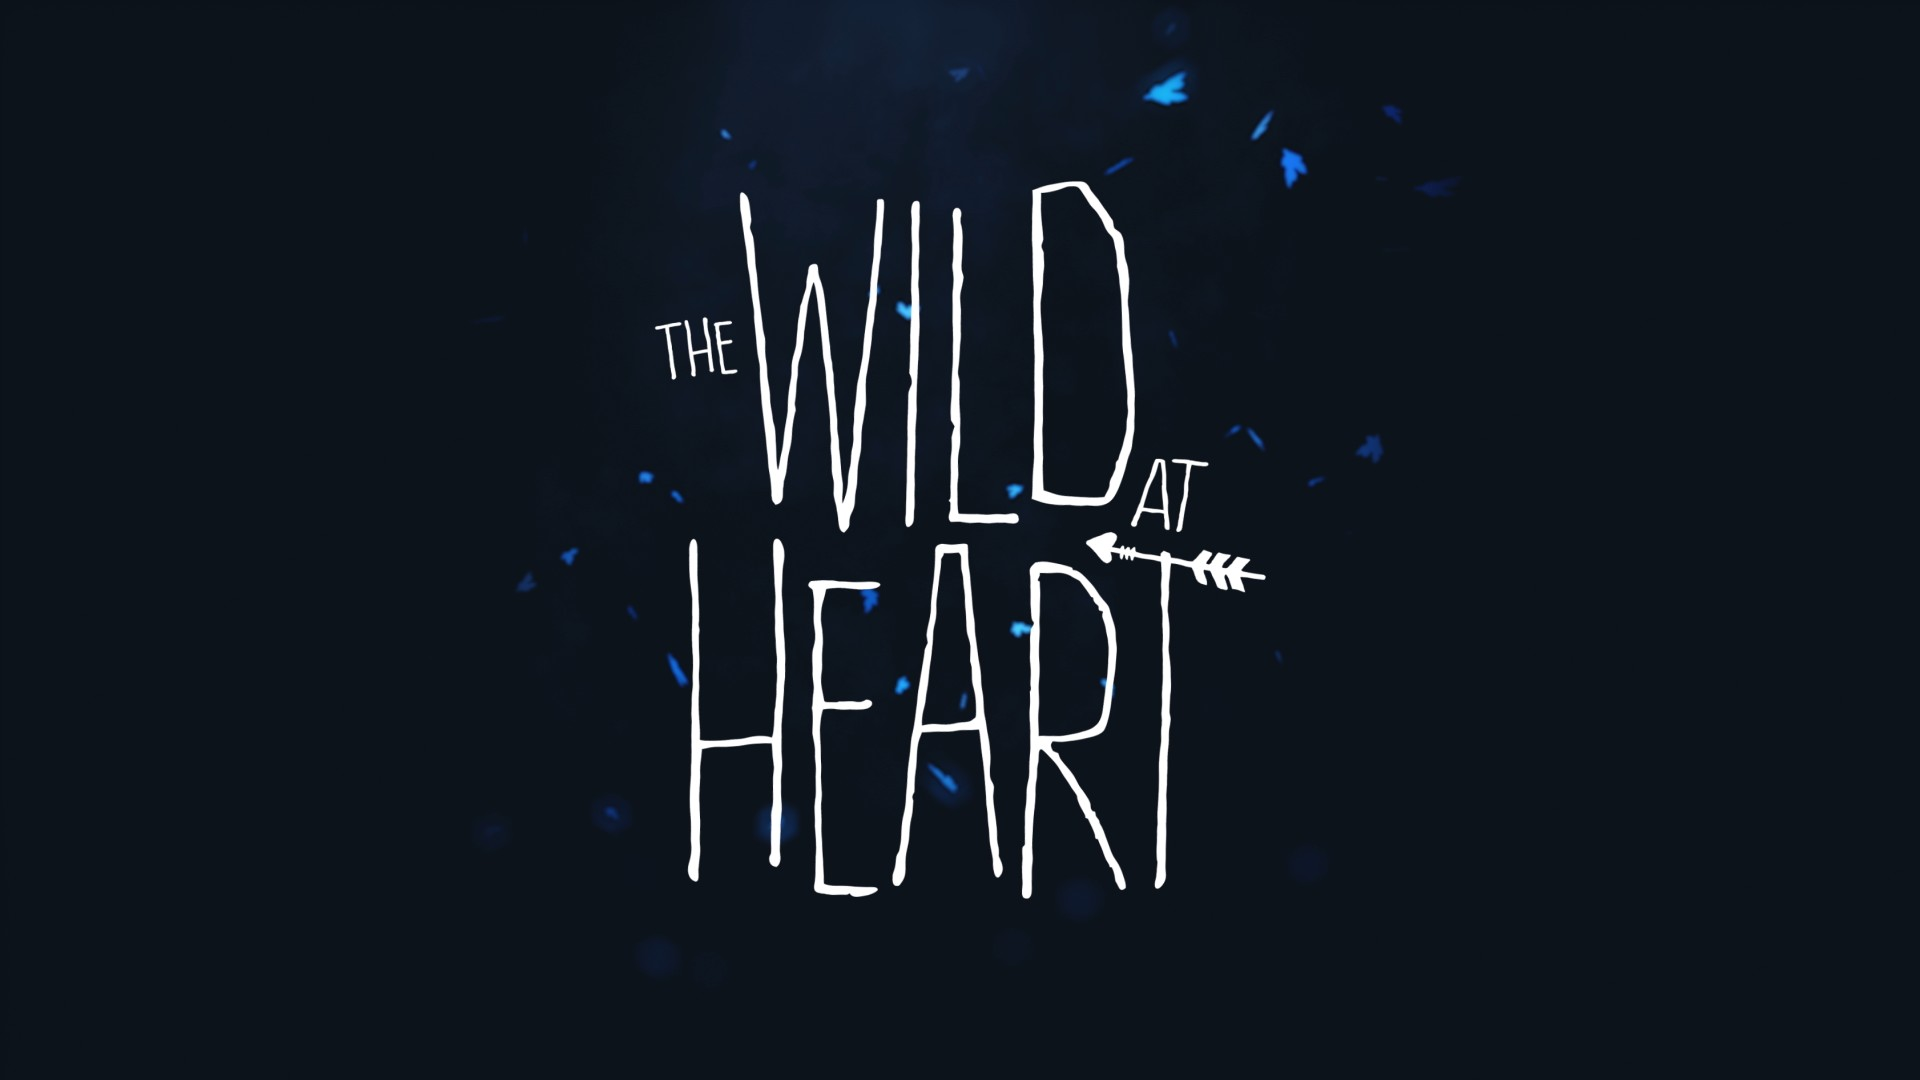 Video For The Wild at Heart Coming to Xbox One in 2021